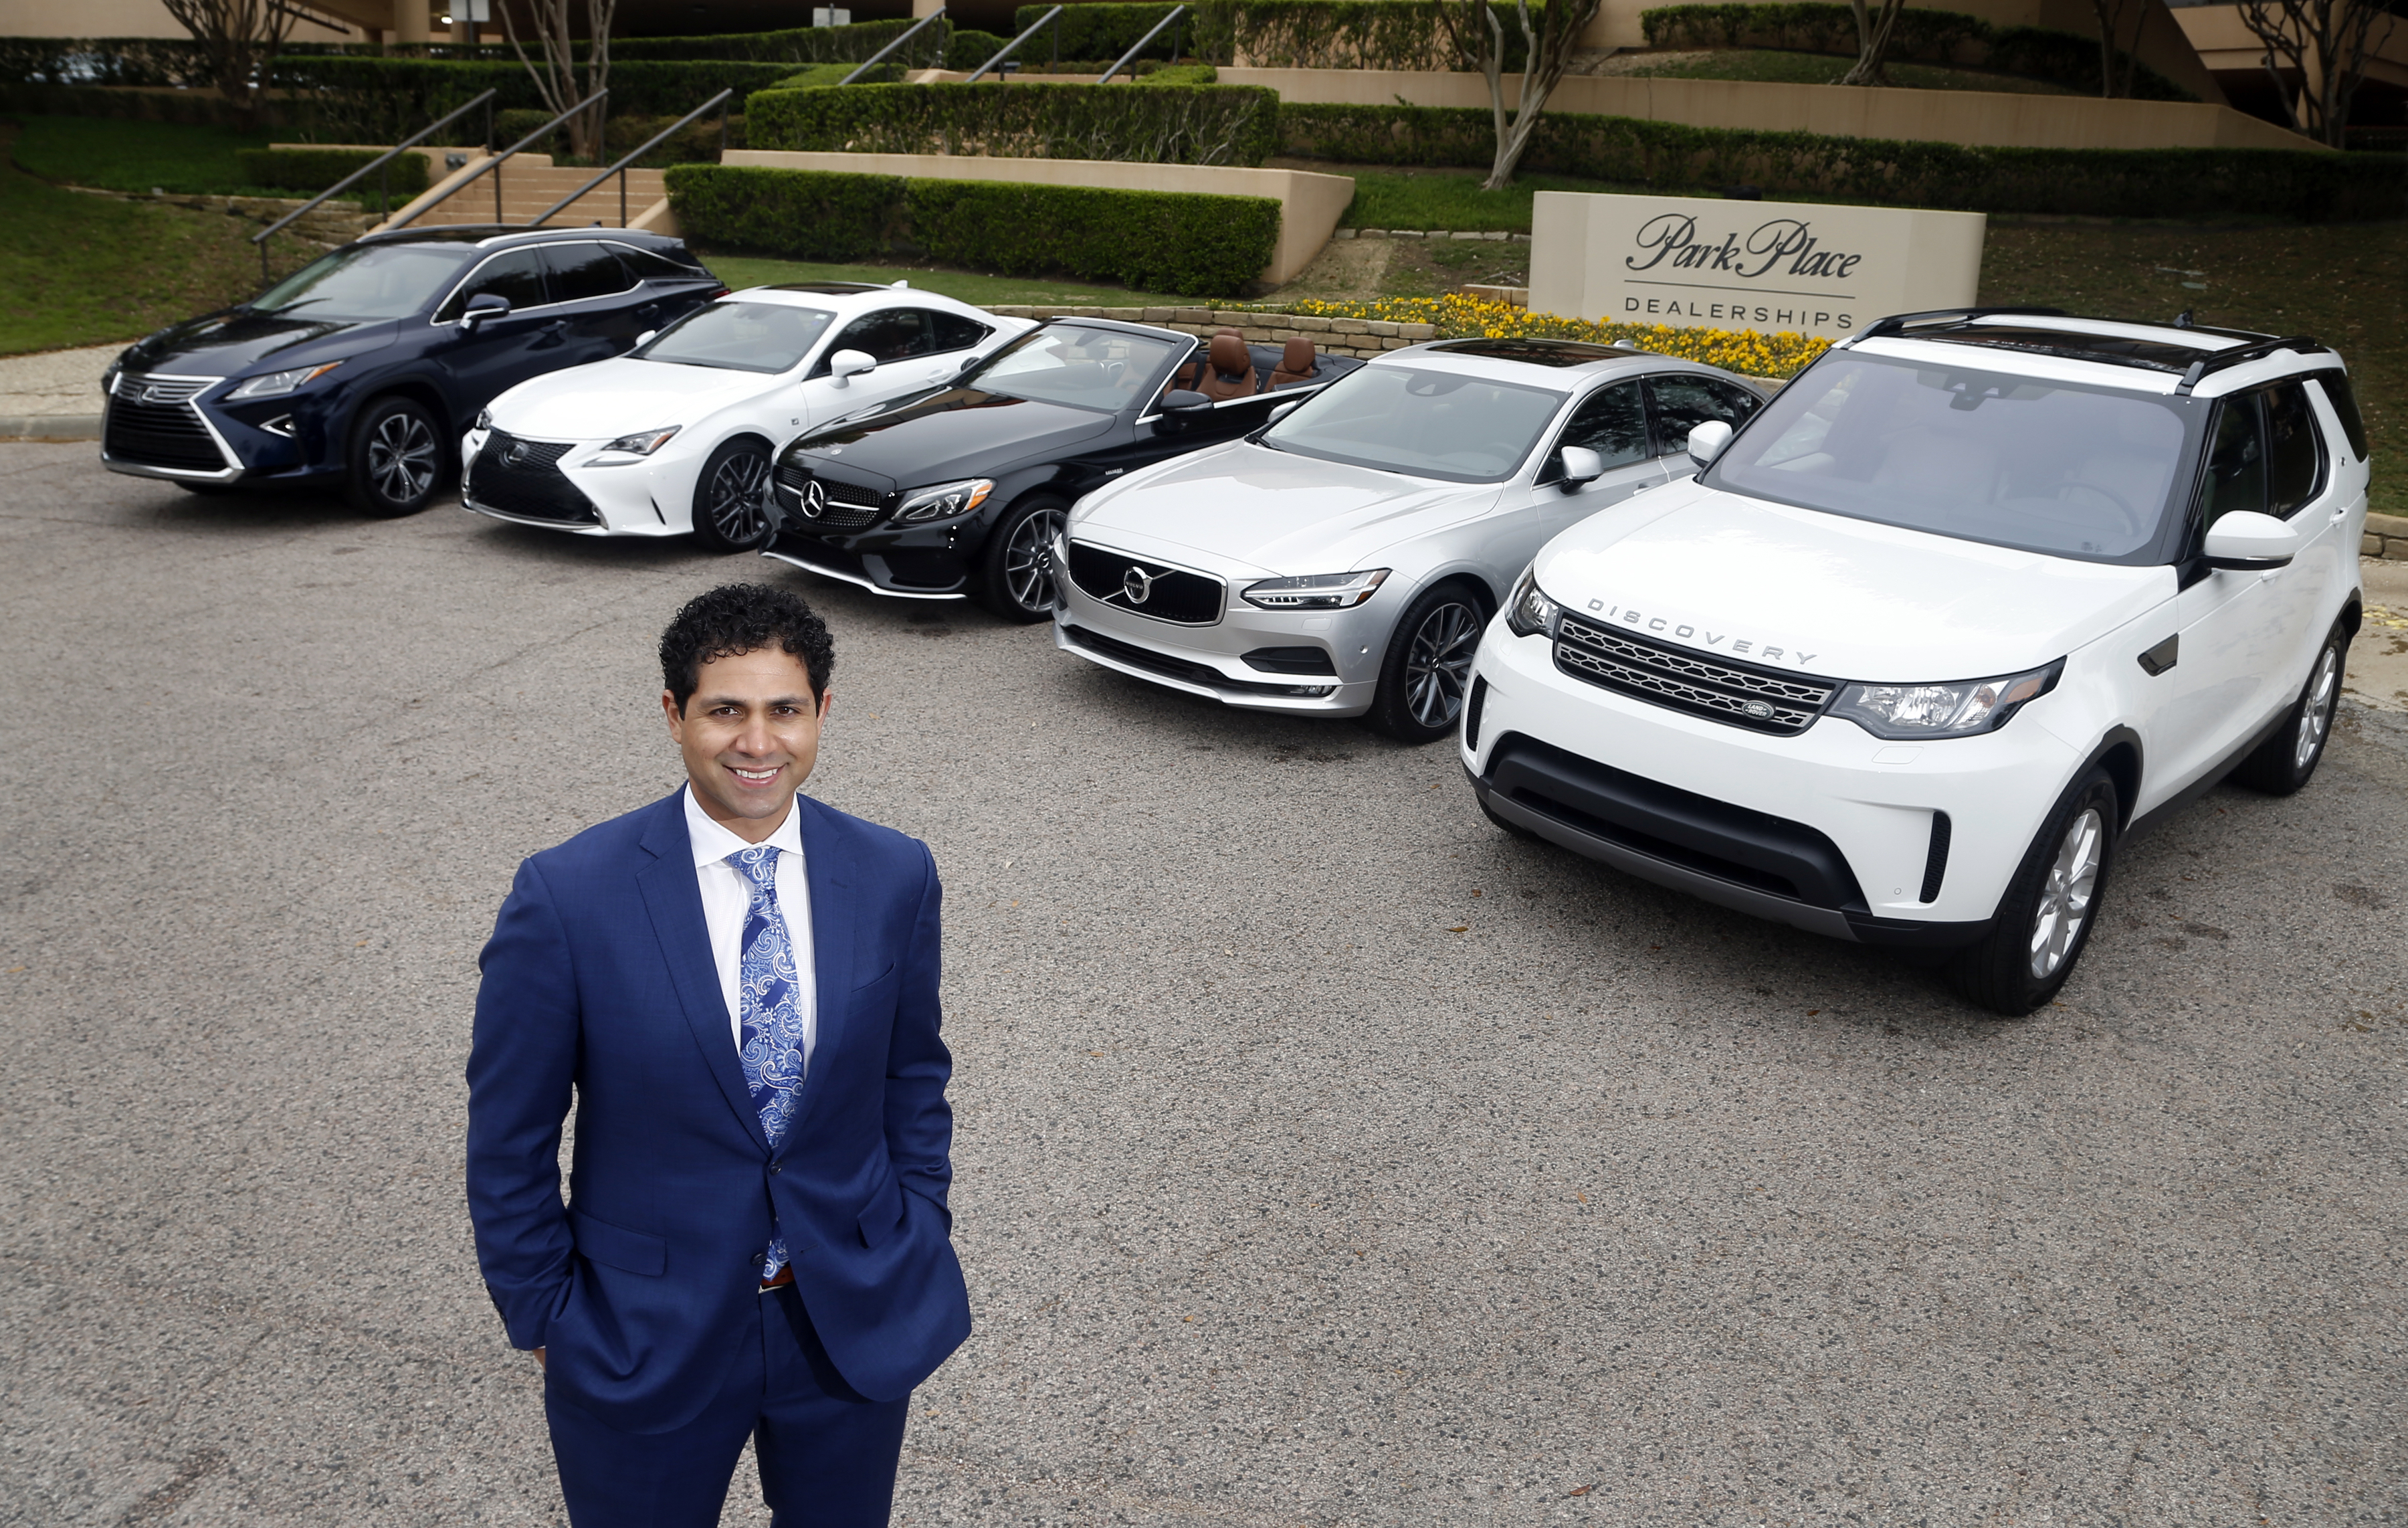 Park Place Dealerships Rolls out Subscription Service | Business Wire